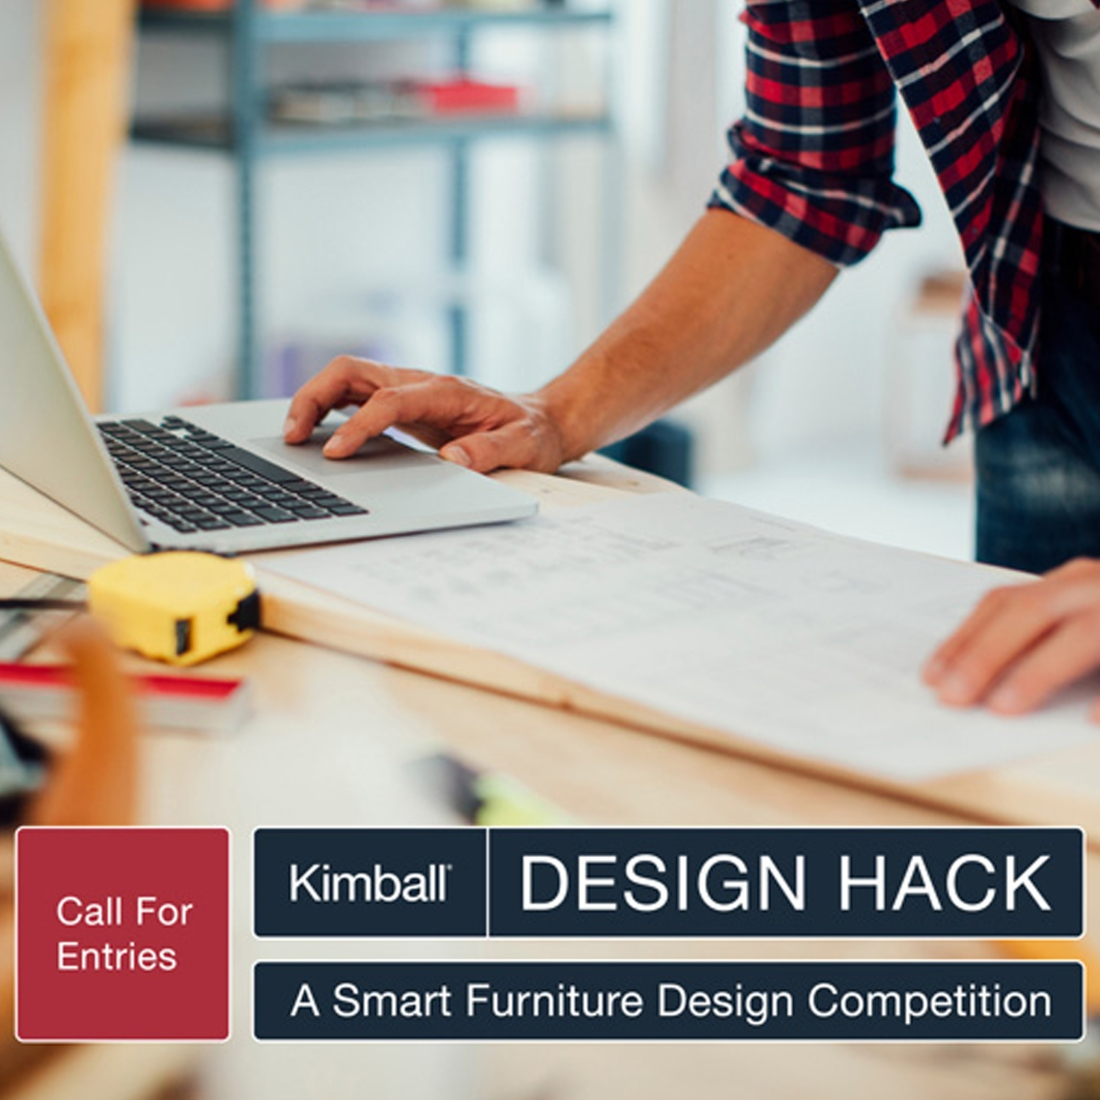 Kimball Design Hack Square